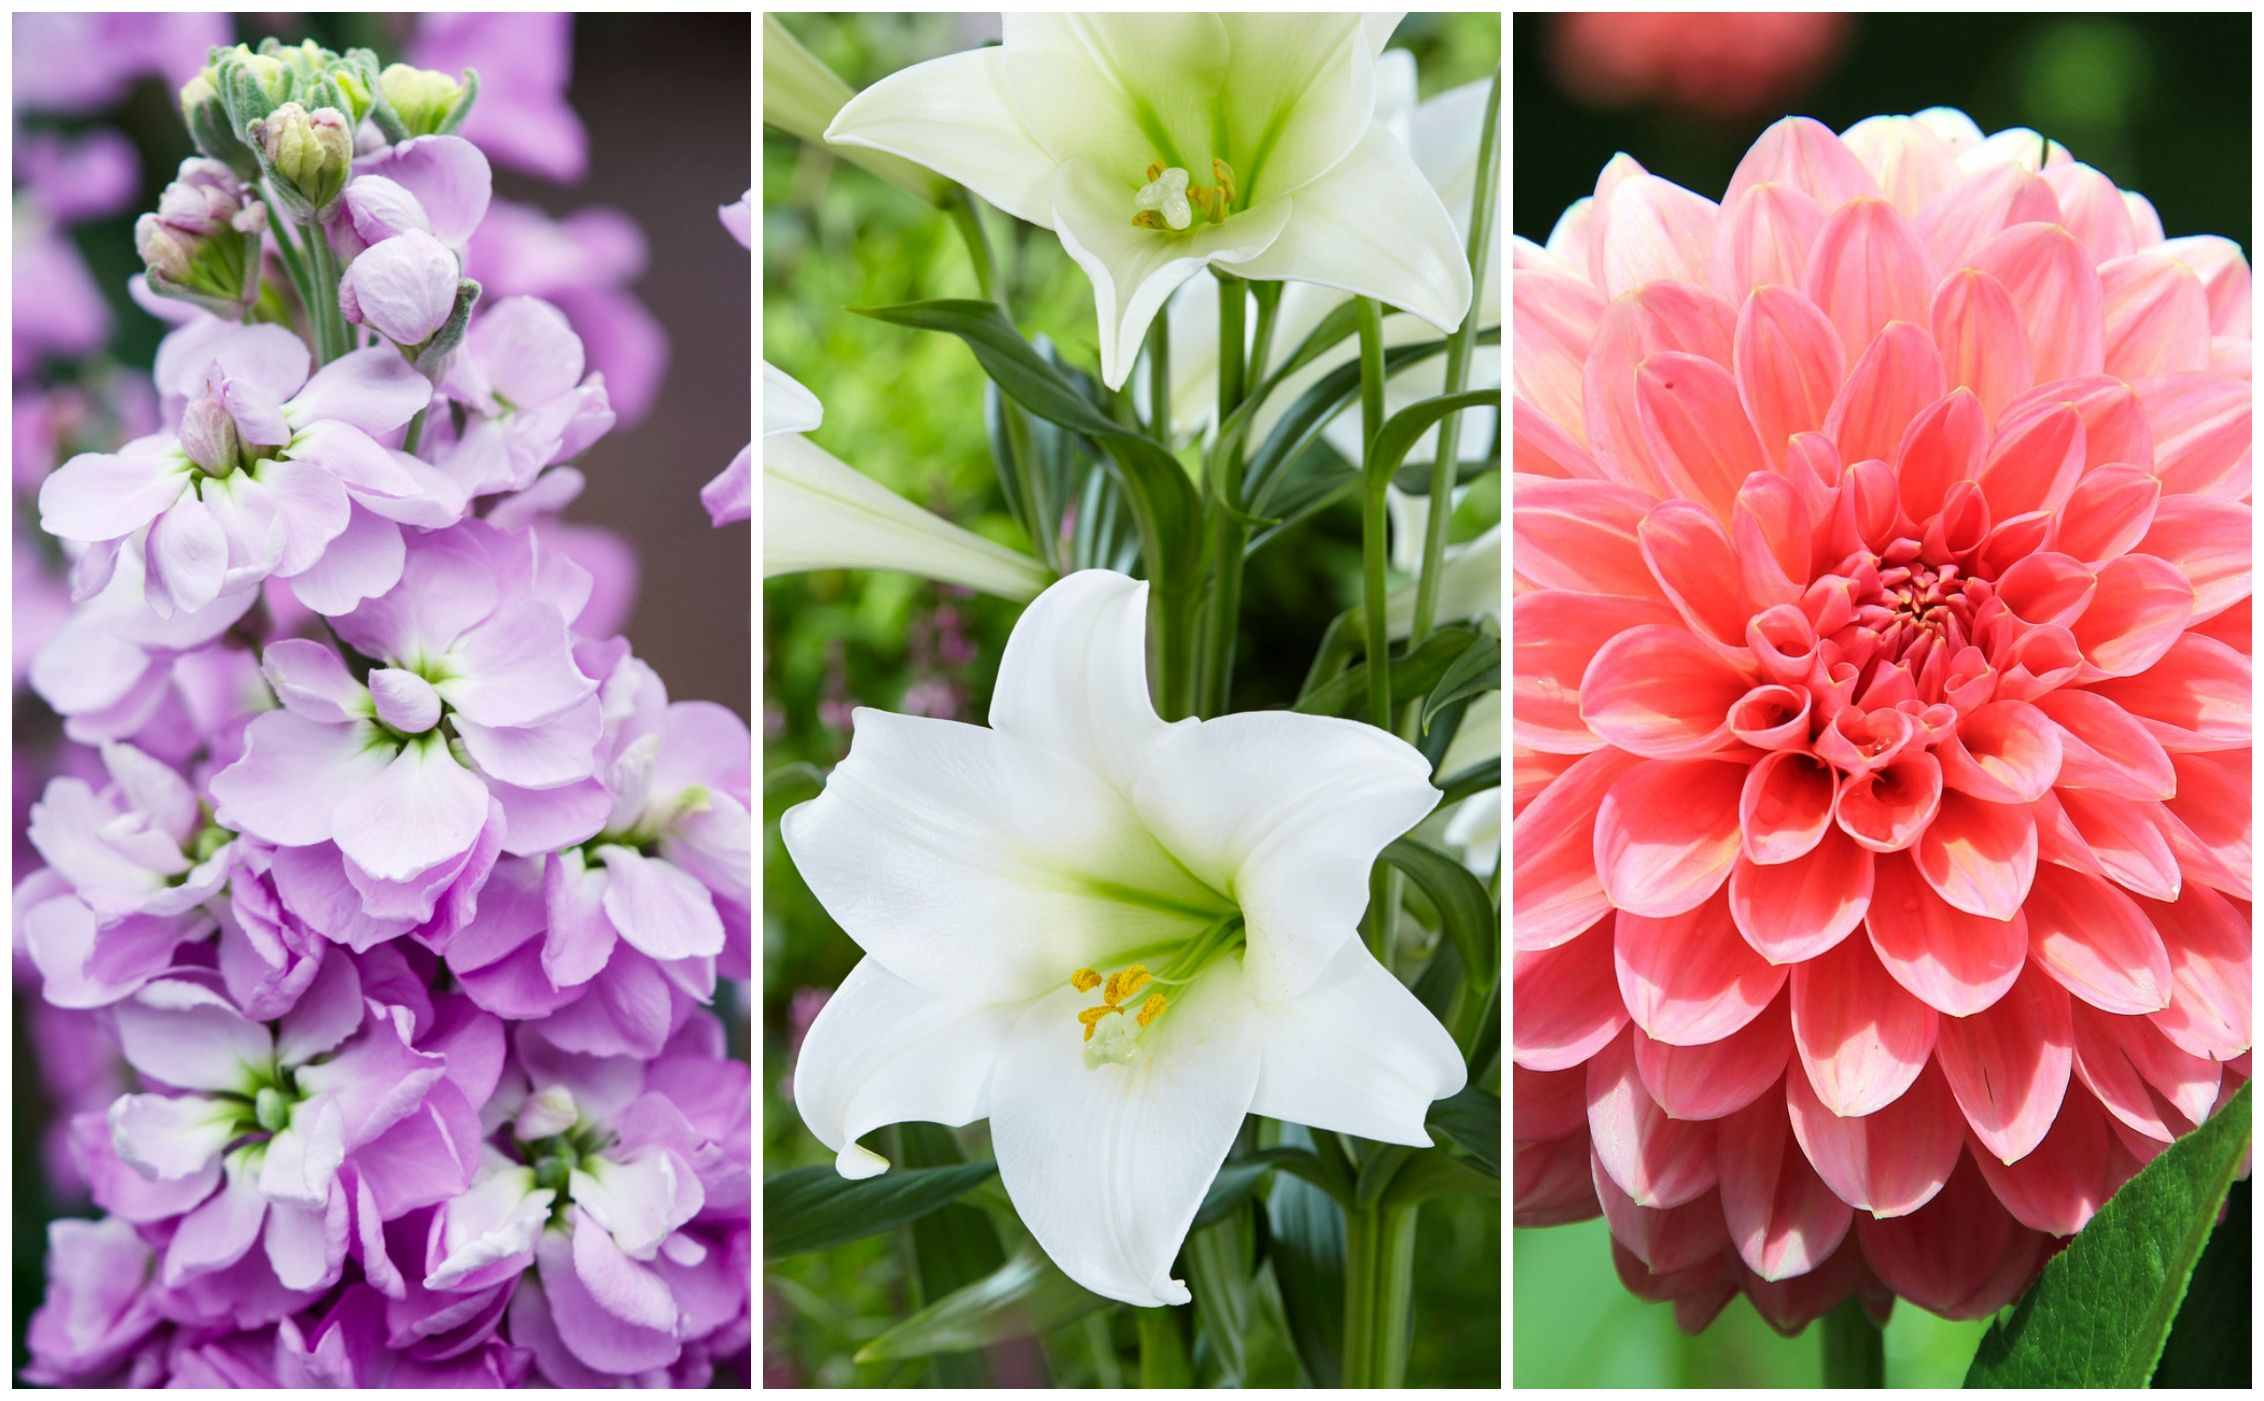 10 British flowers that bloom in July